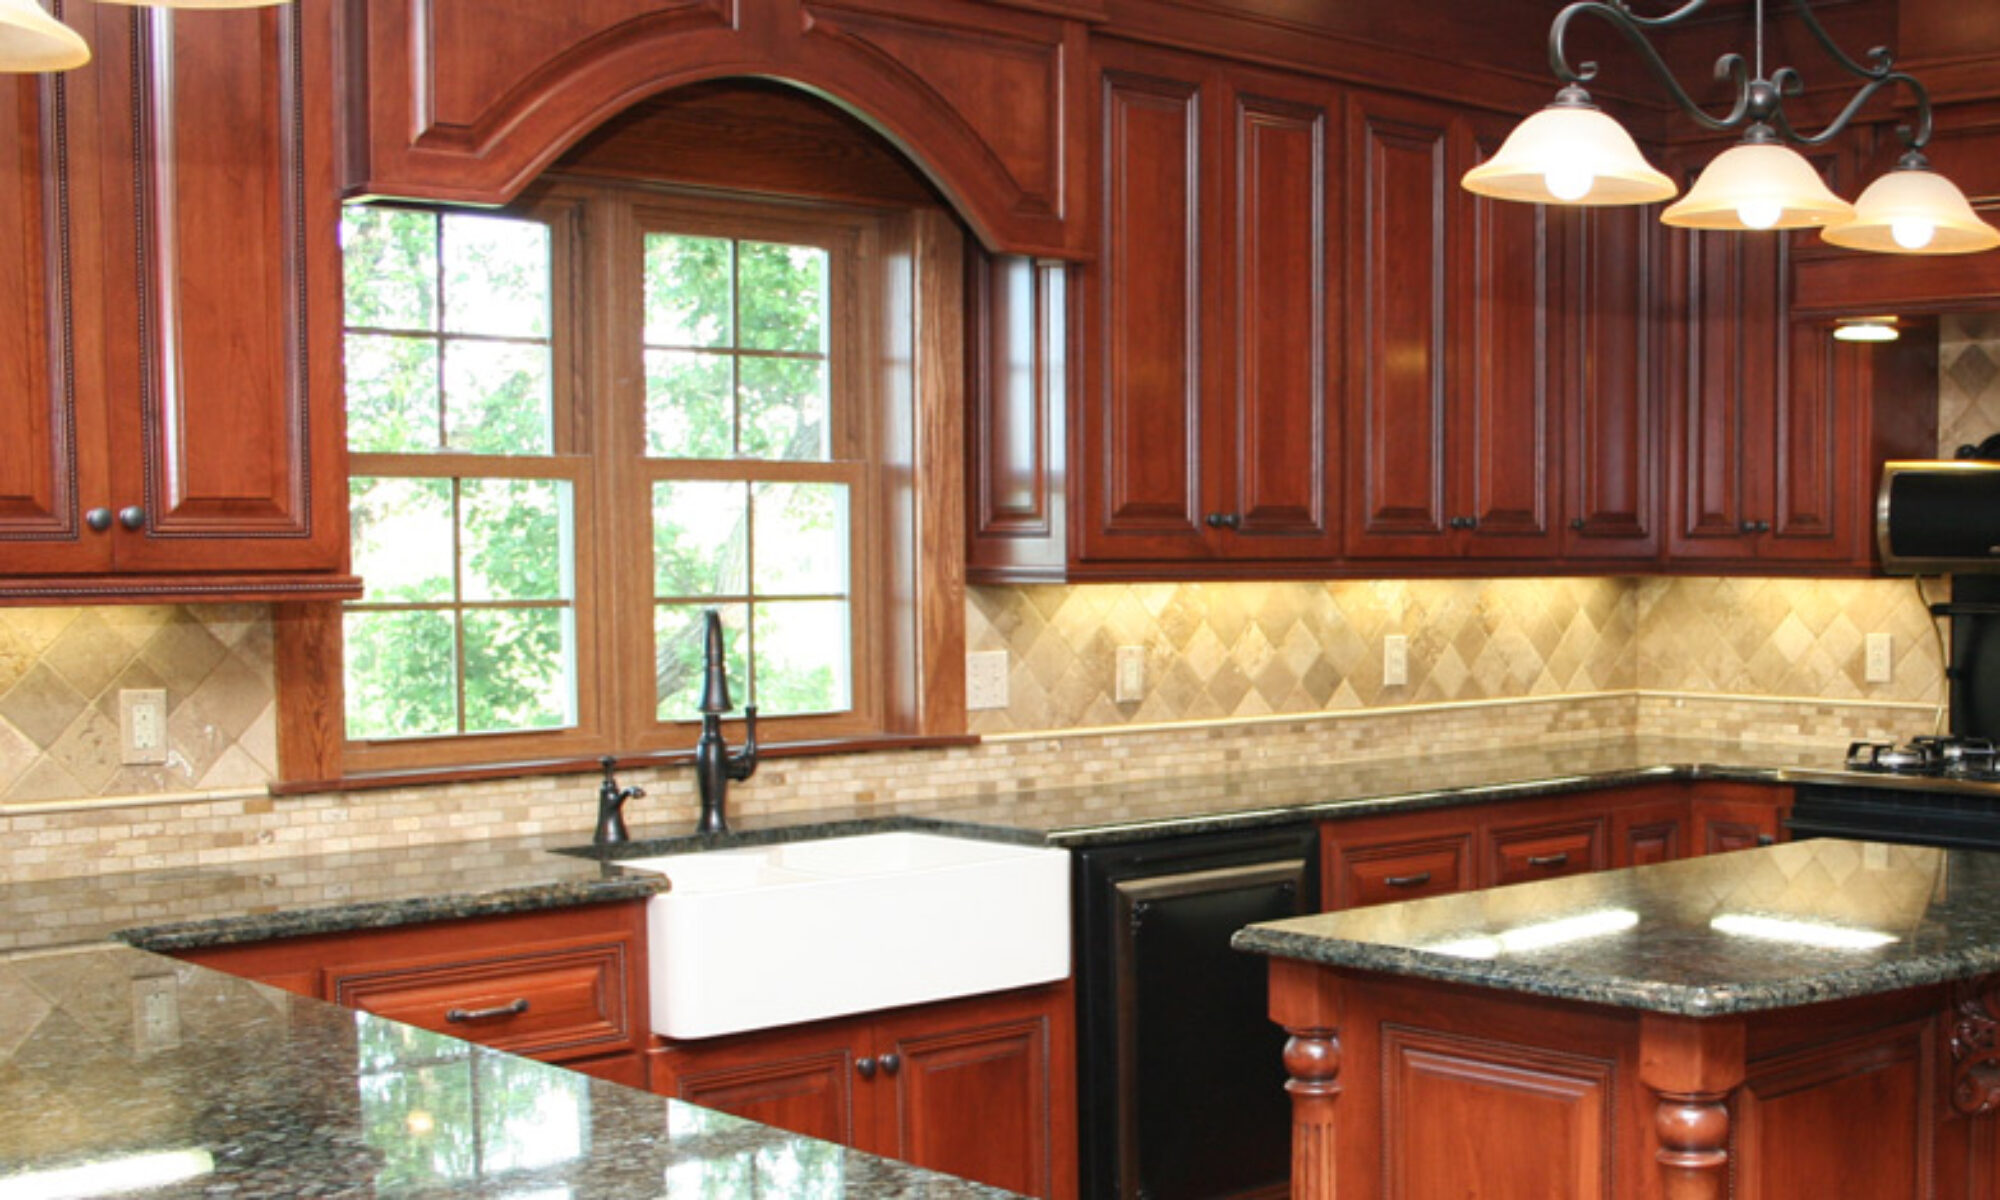 Maselter Cabinets